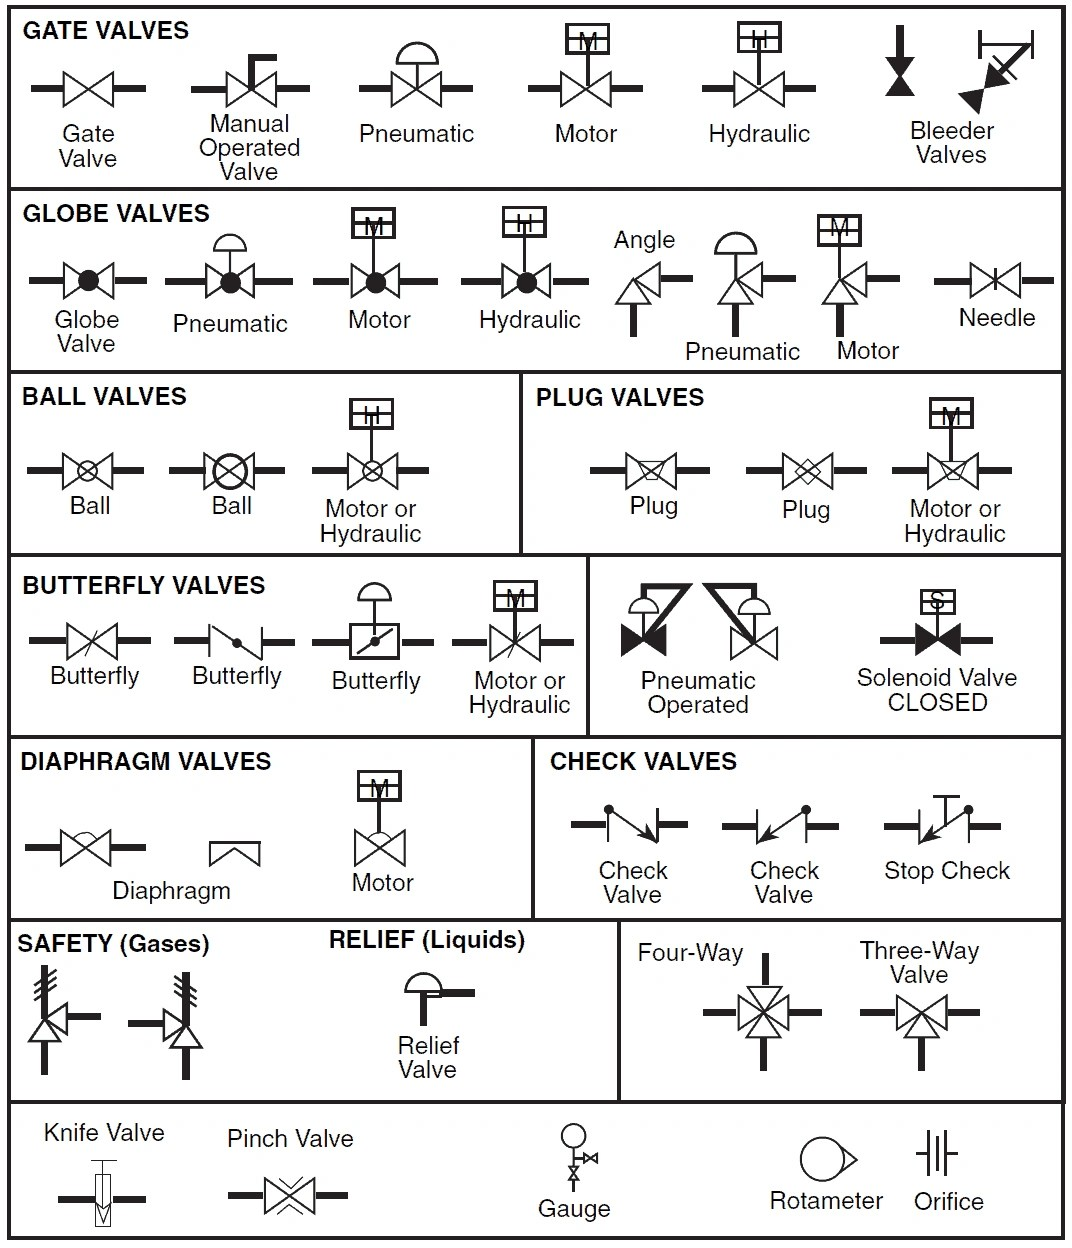 hight resolution of valve p id symbols